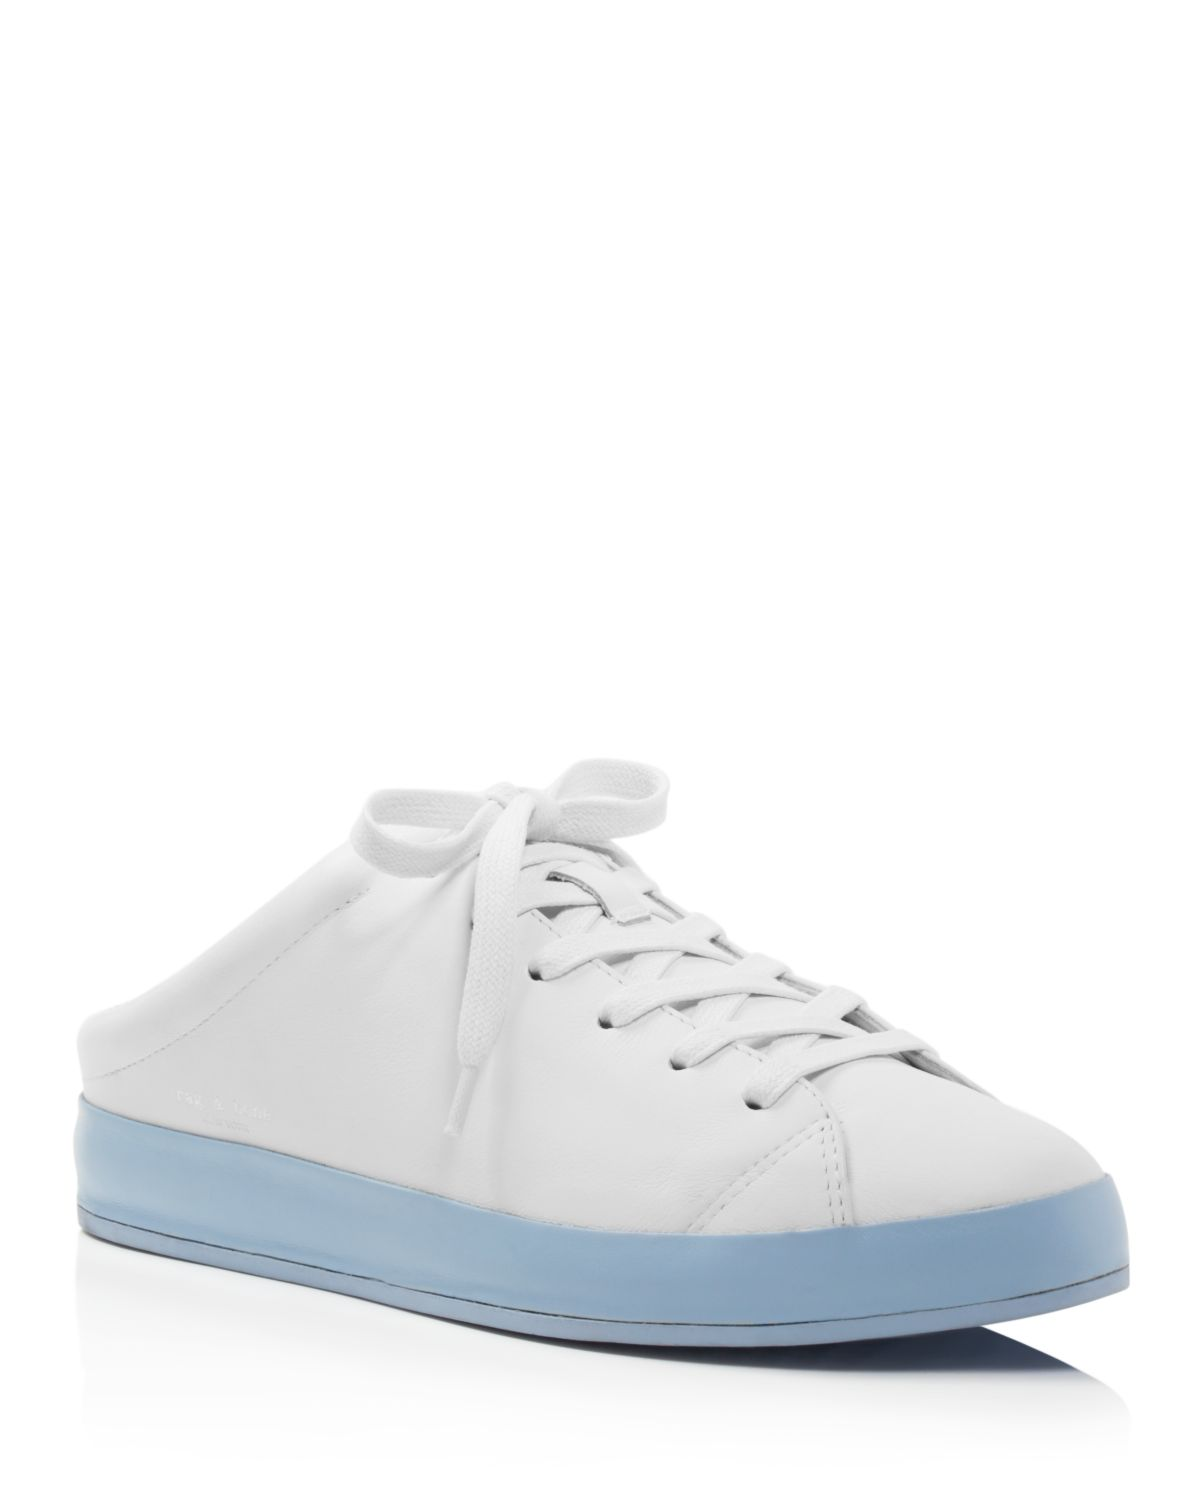 RAG&BONE Women's Rb1 Leather Sneaker Mules